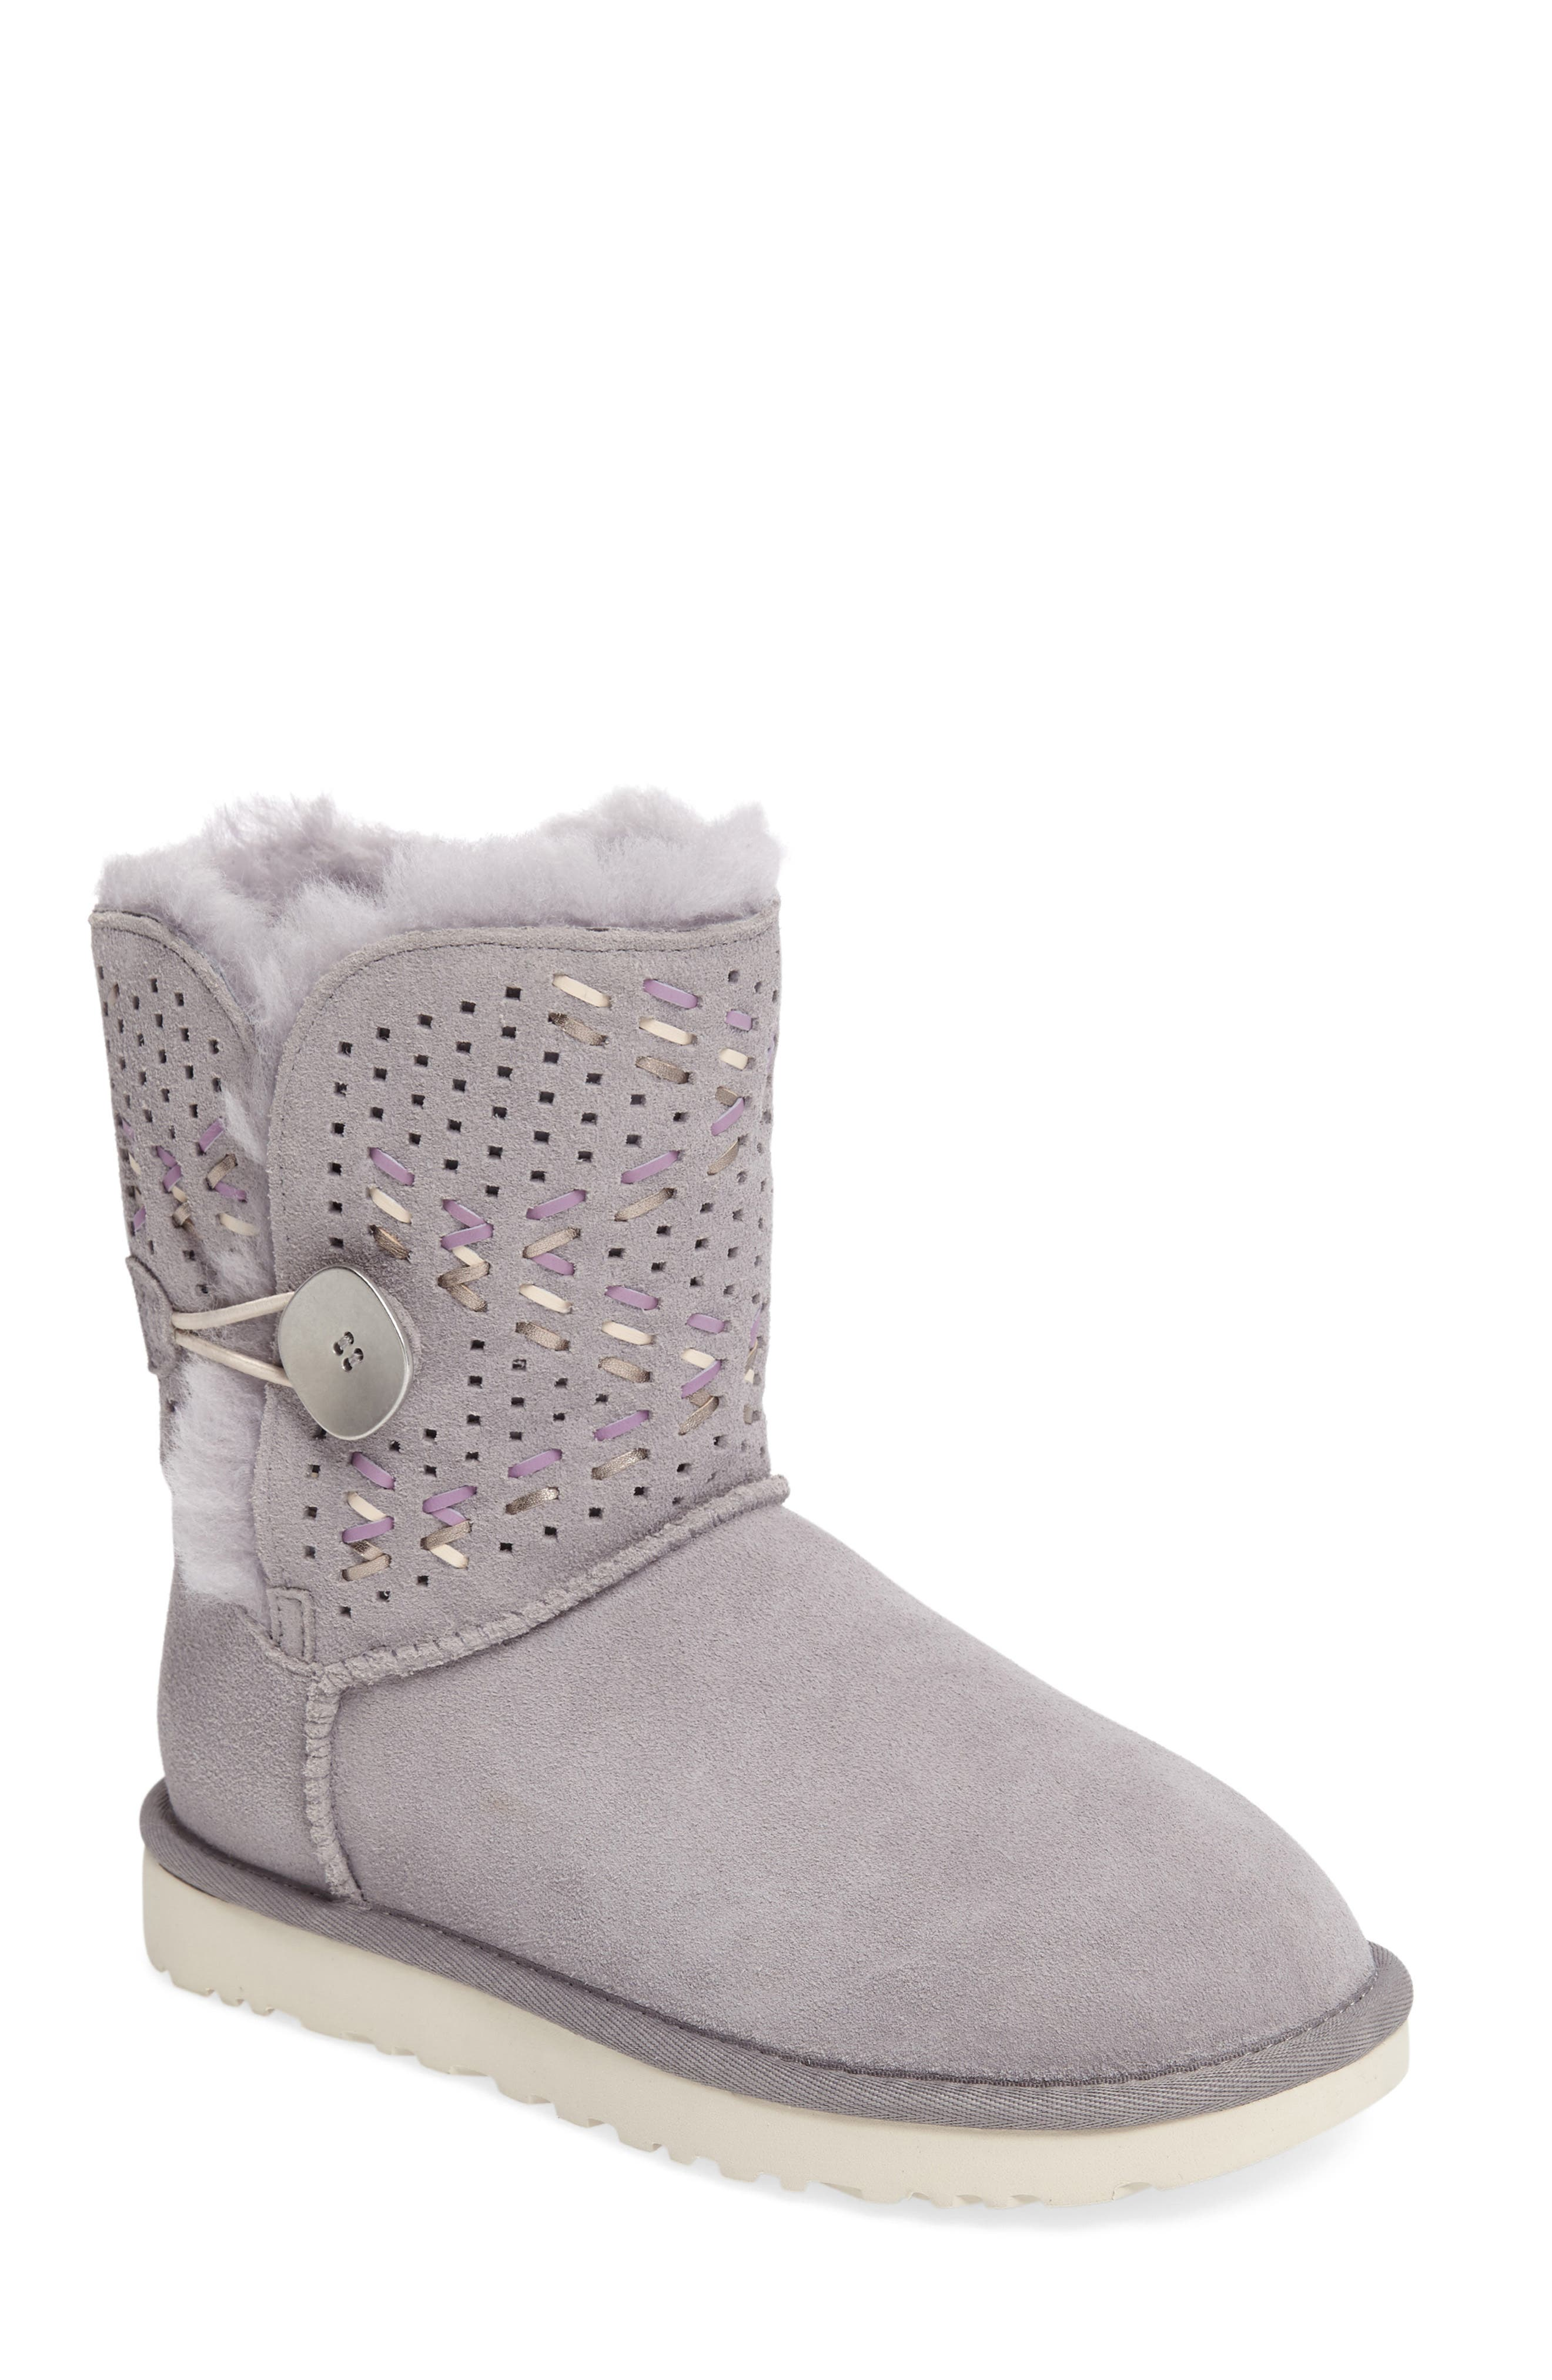 Bailey Button Tehuano Genuine Shearling Boot, Main, color, 055